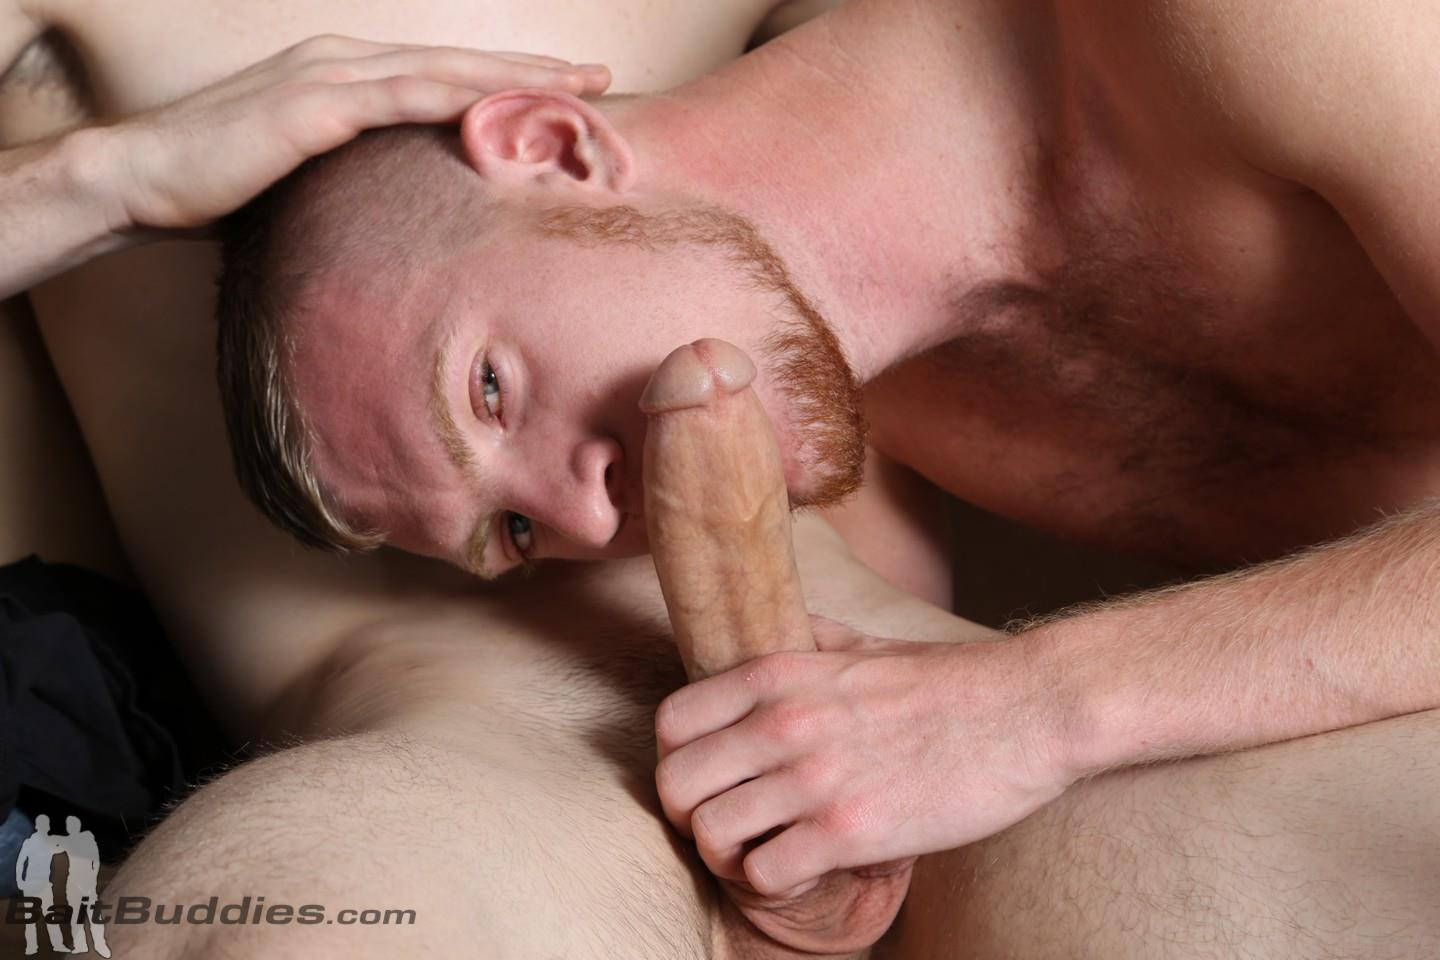 Bait-Buddies-Billy-Warren-and-Jake-Nelson-Straight-Guy-Fucking-Gay-Guy-Amateur-Gay-Porn-27 Amateur Big Cock Straight Guy Fucking A Hairy Gay Ass